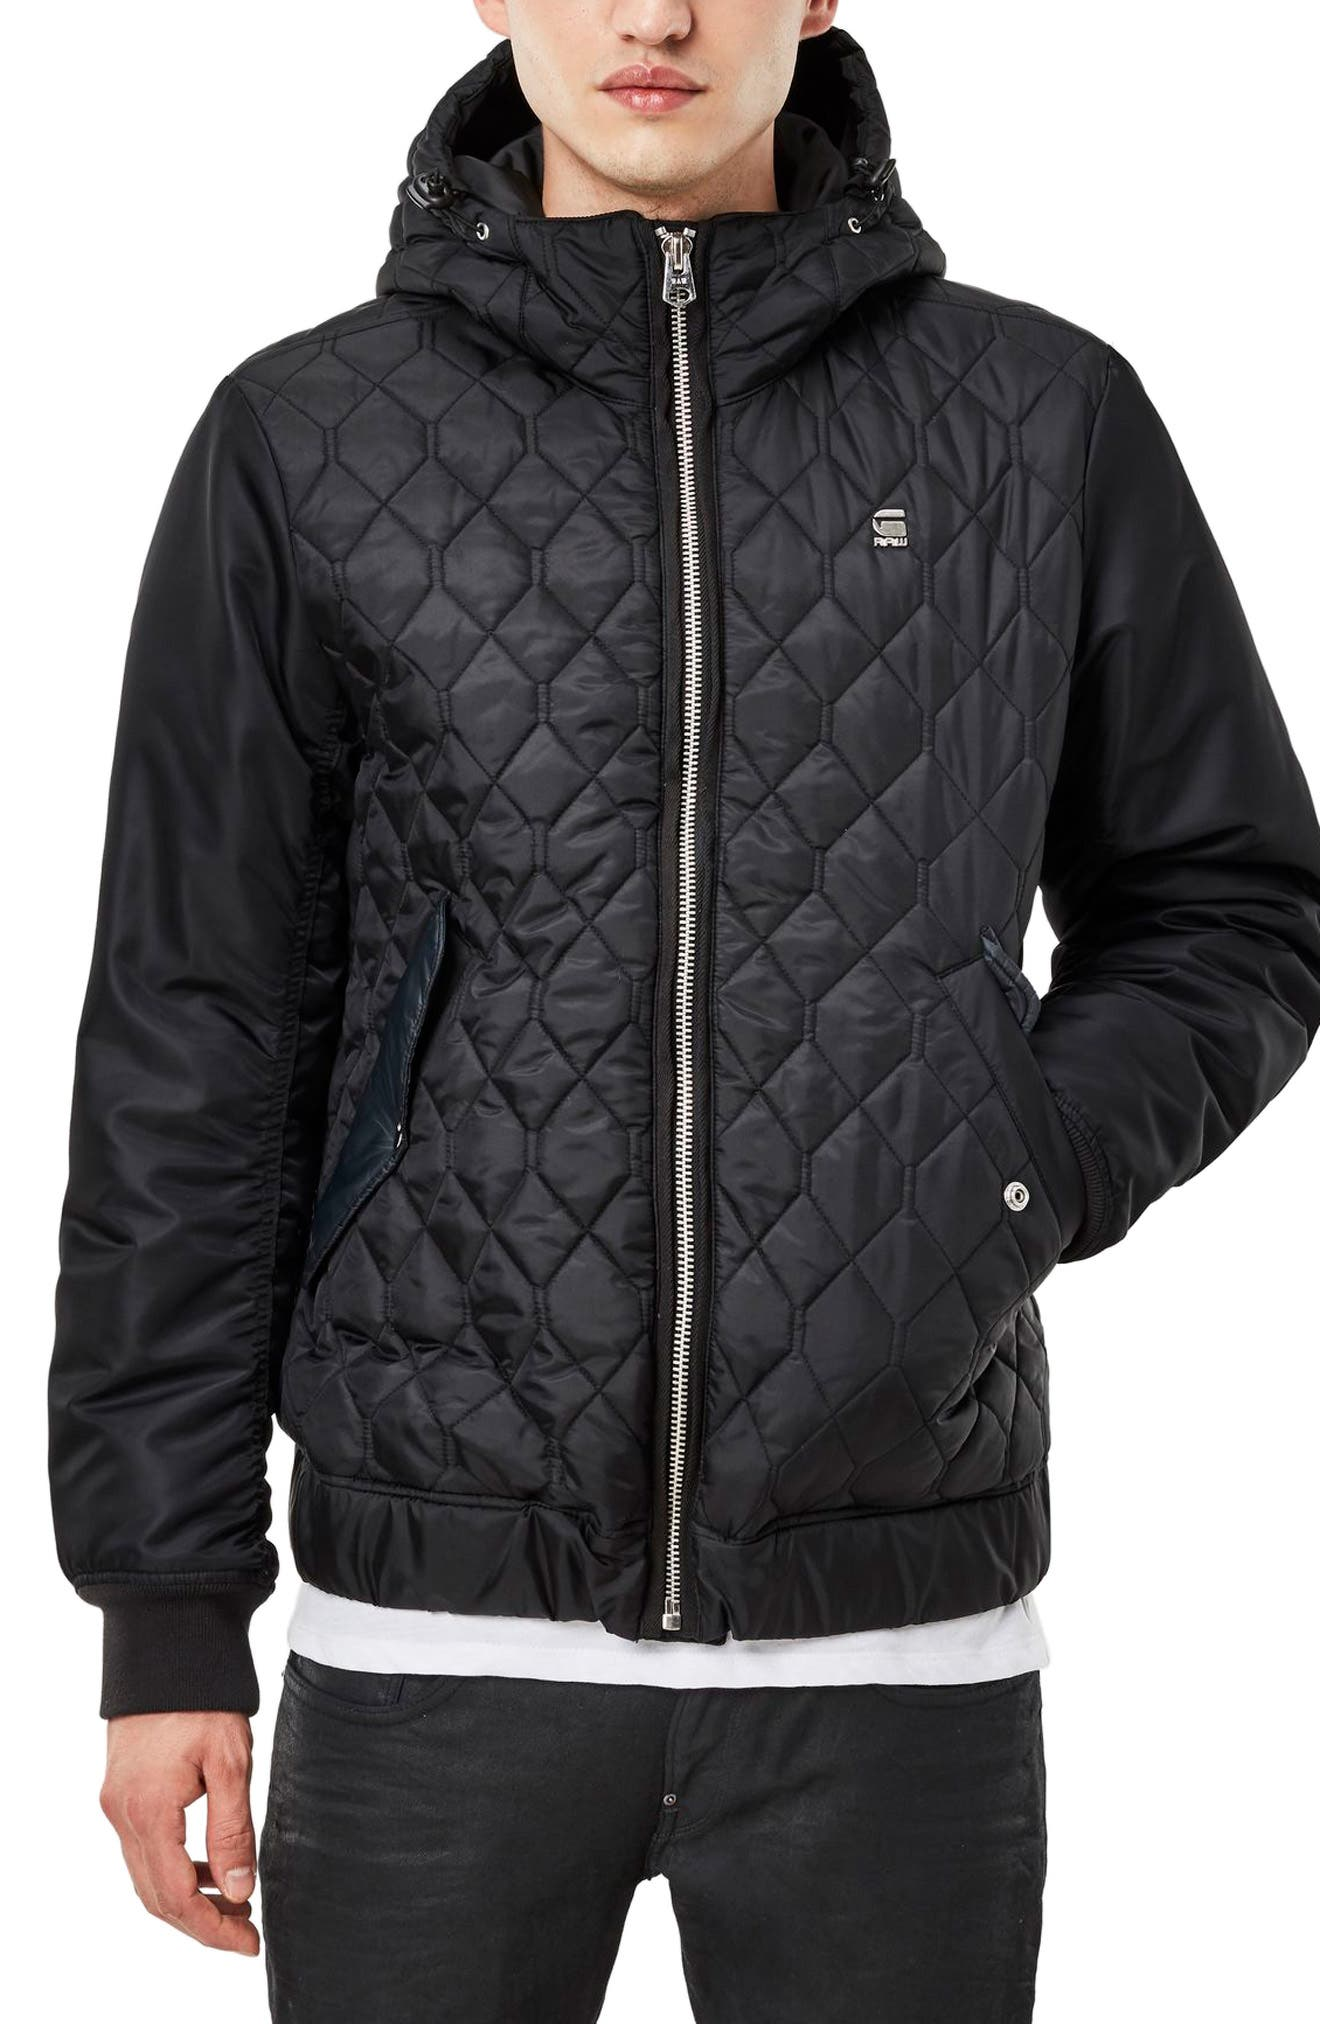 Meefic Hybrid Quilted Jacket,                         Main,                         color, 001